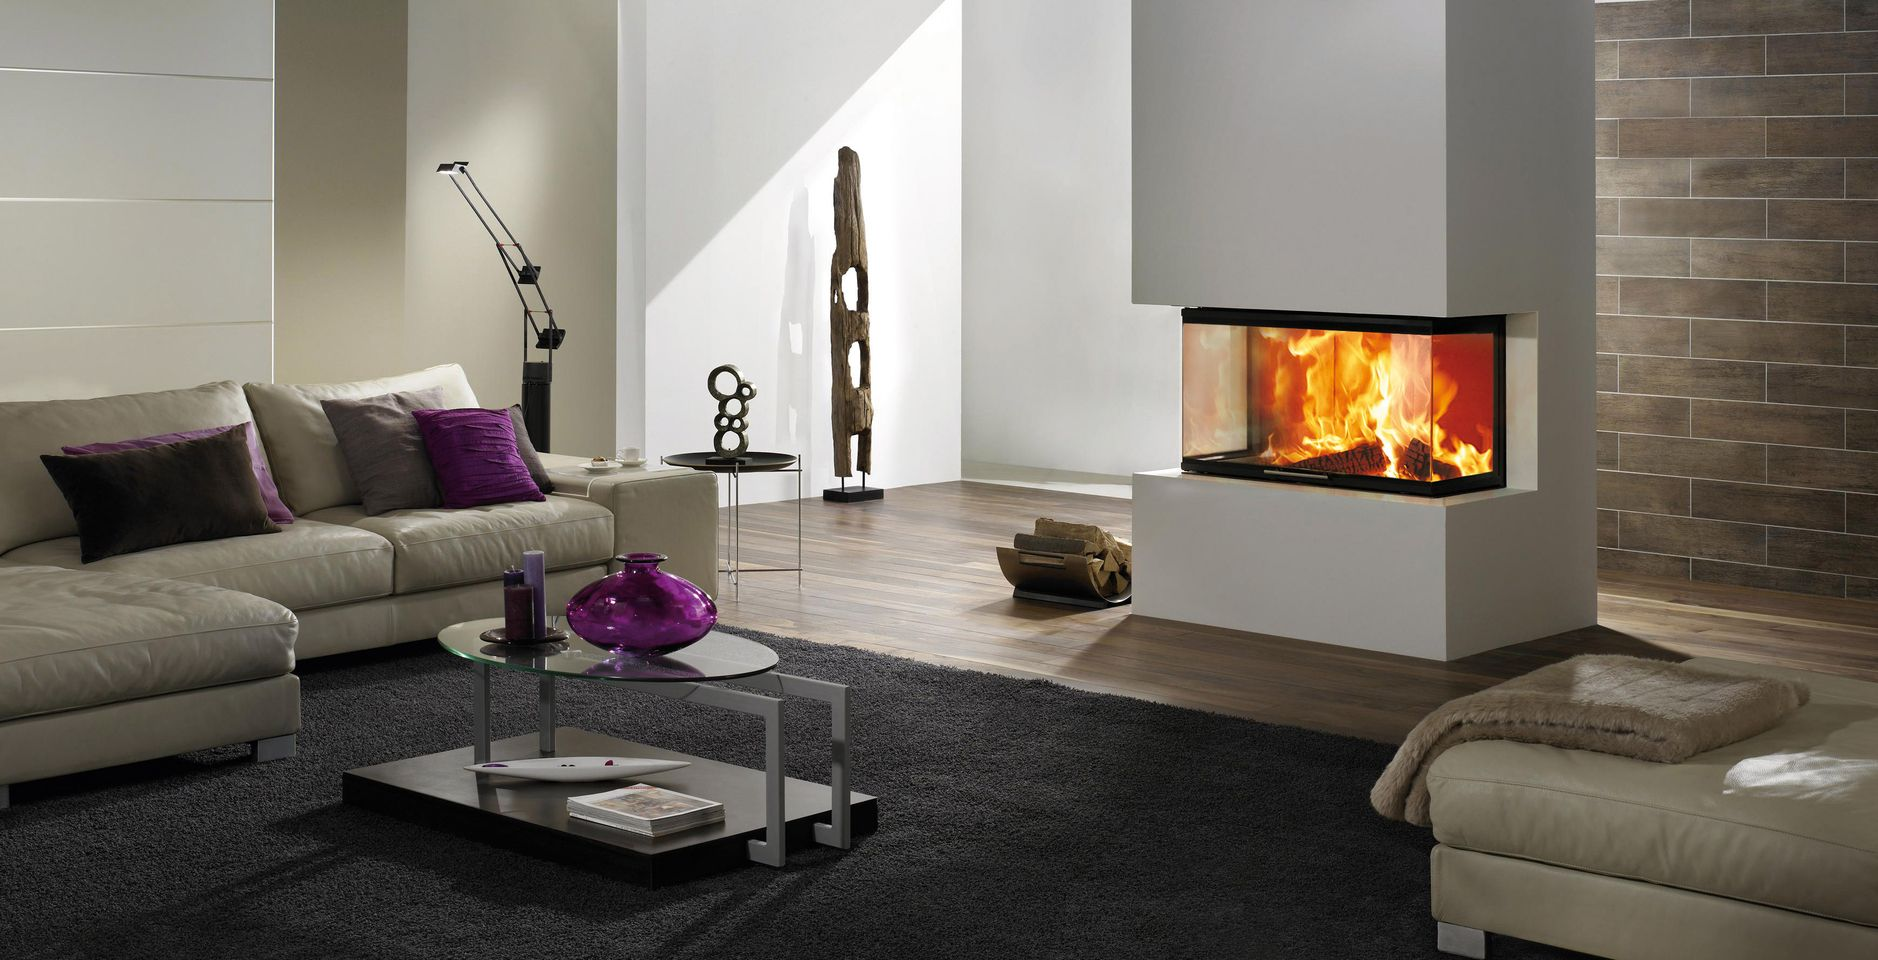 awesome spartherm feuerungstechnik gmbh pictures. Black Bedroom Furniture Sets. Home Design Ideas